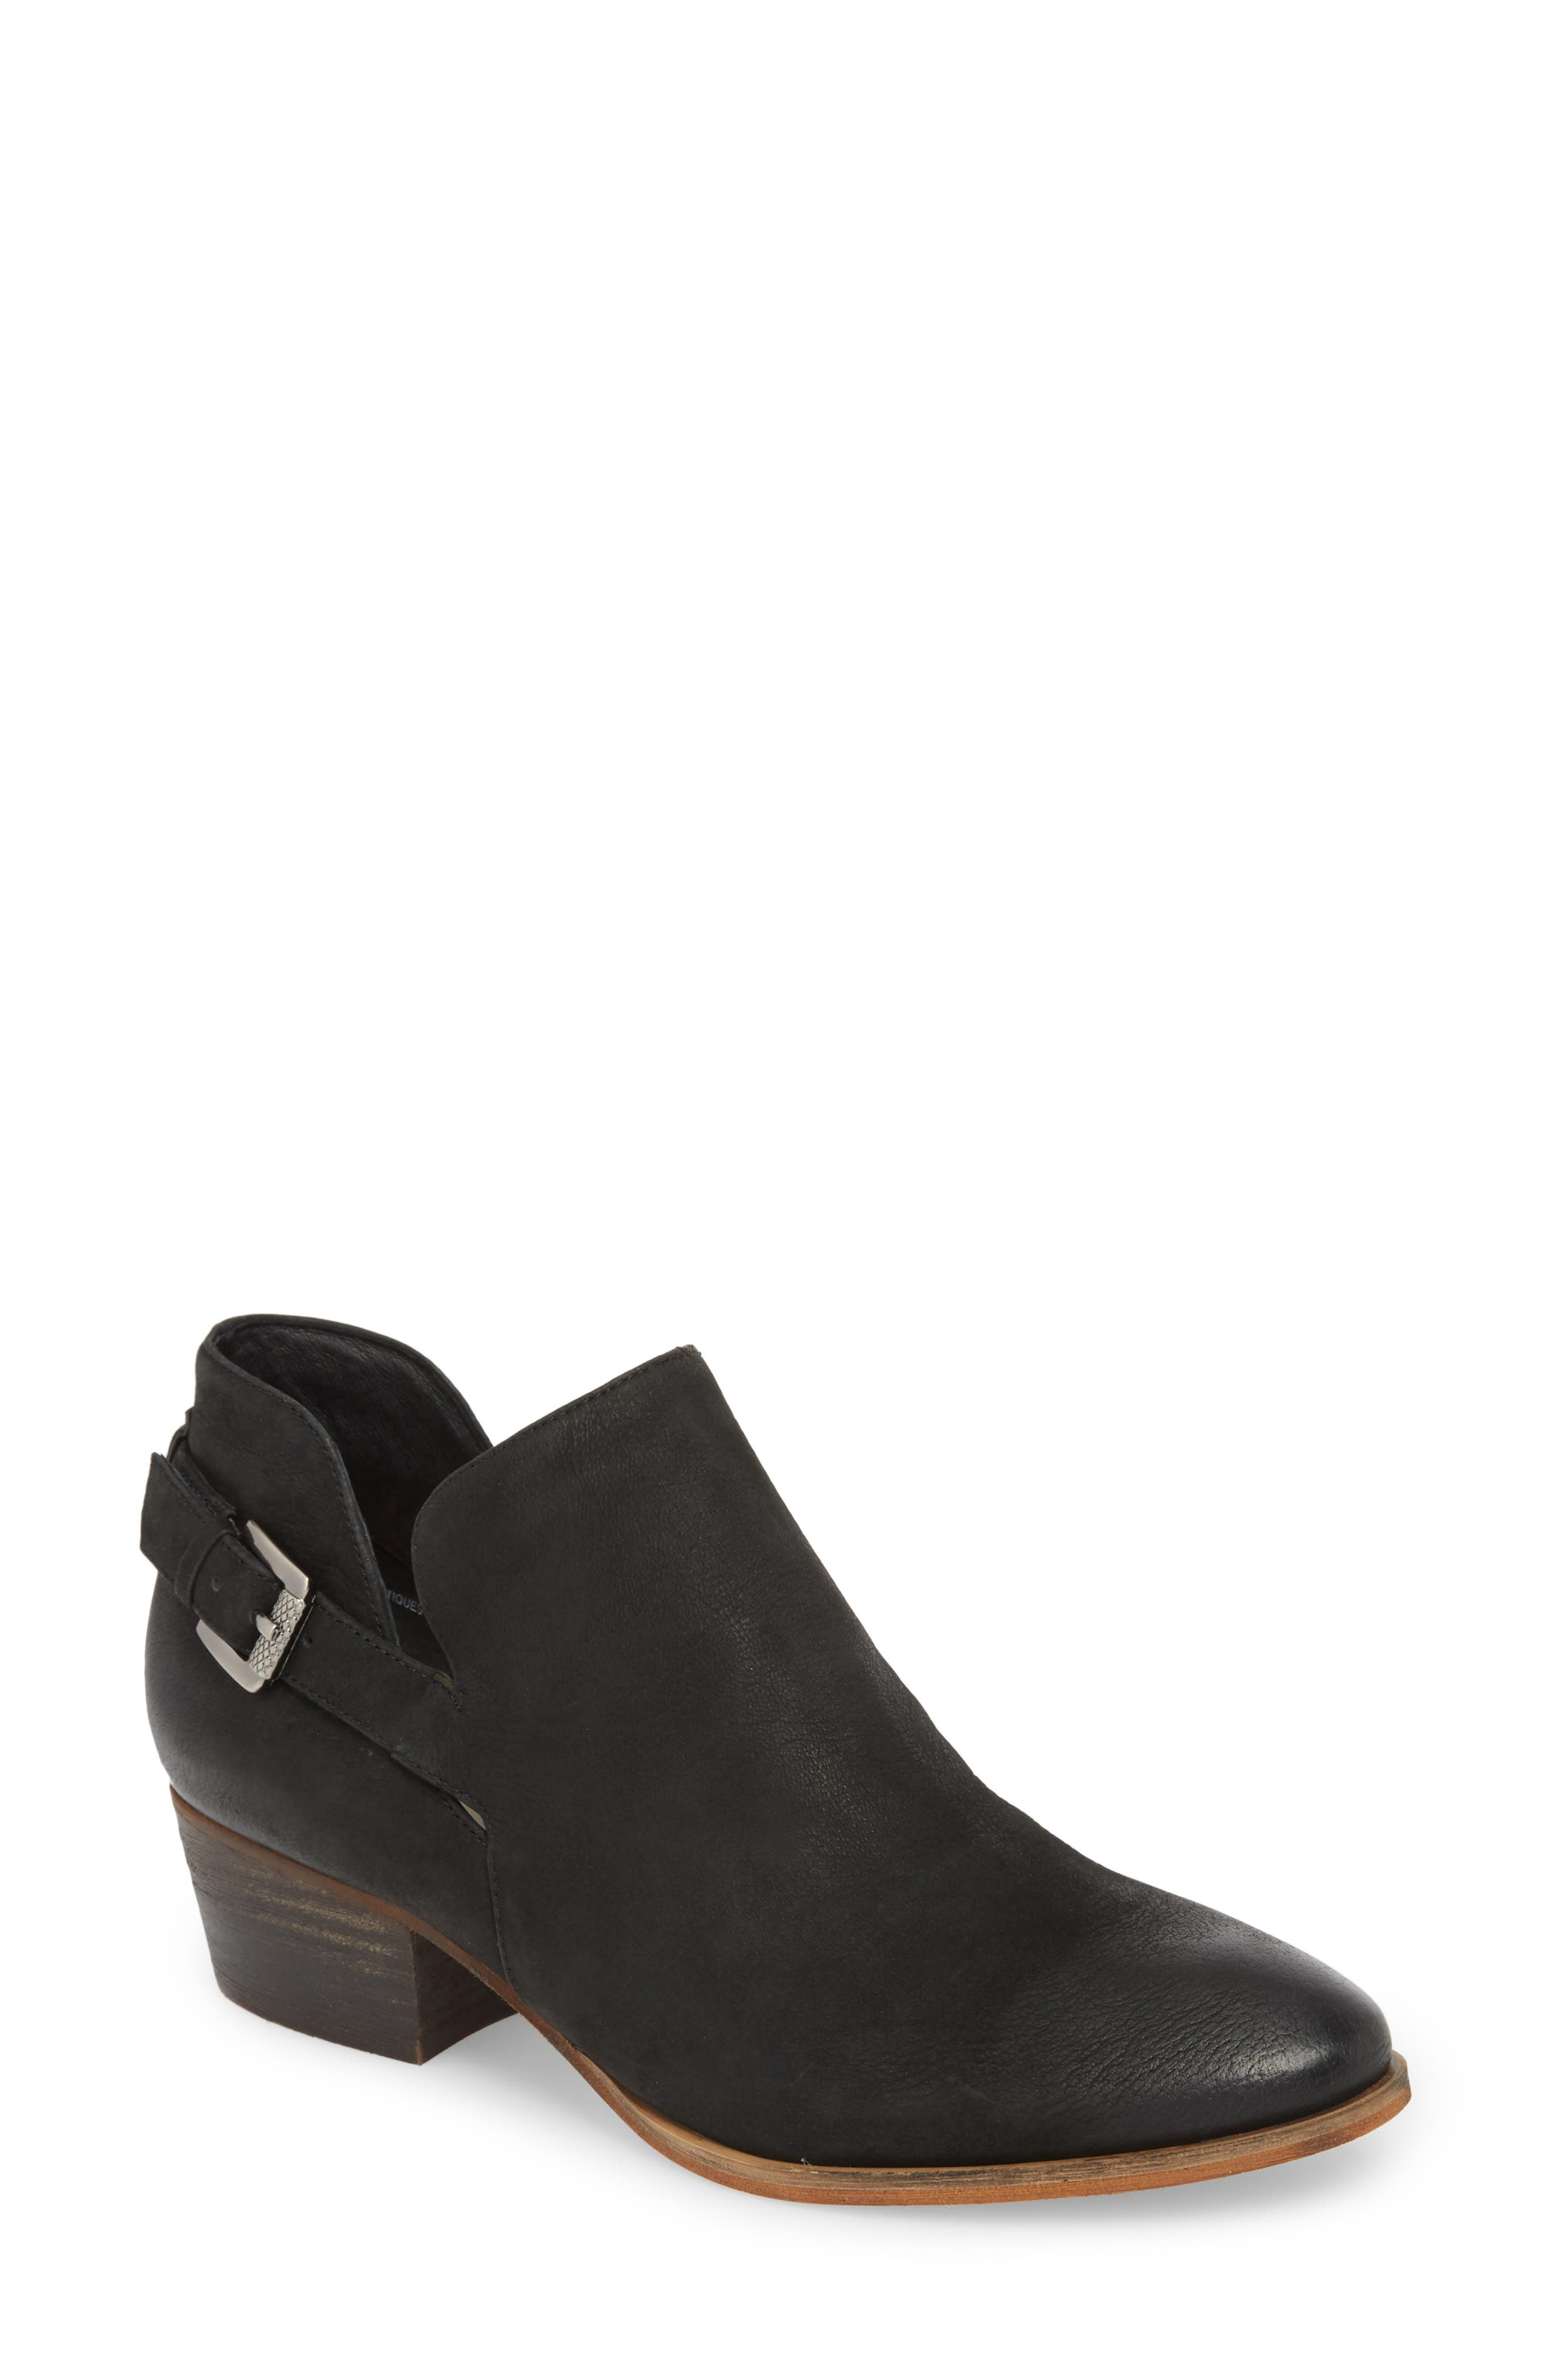 Toby Bootie,                             Main thumbnail 1, color,                             BLACK OILED NUBUCK